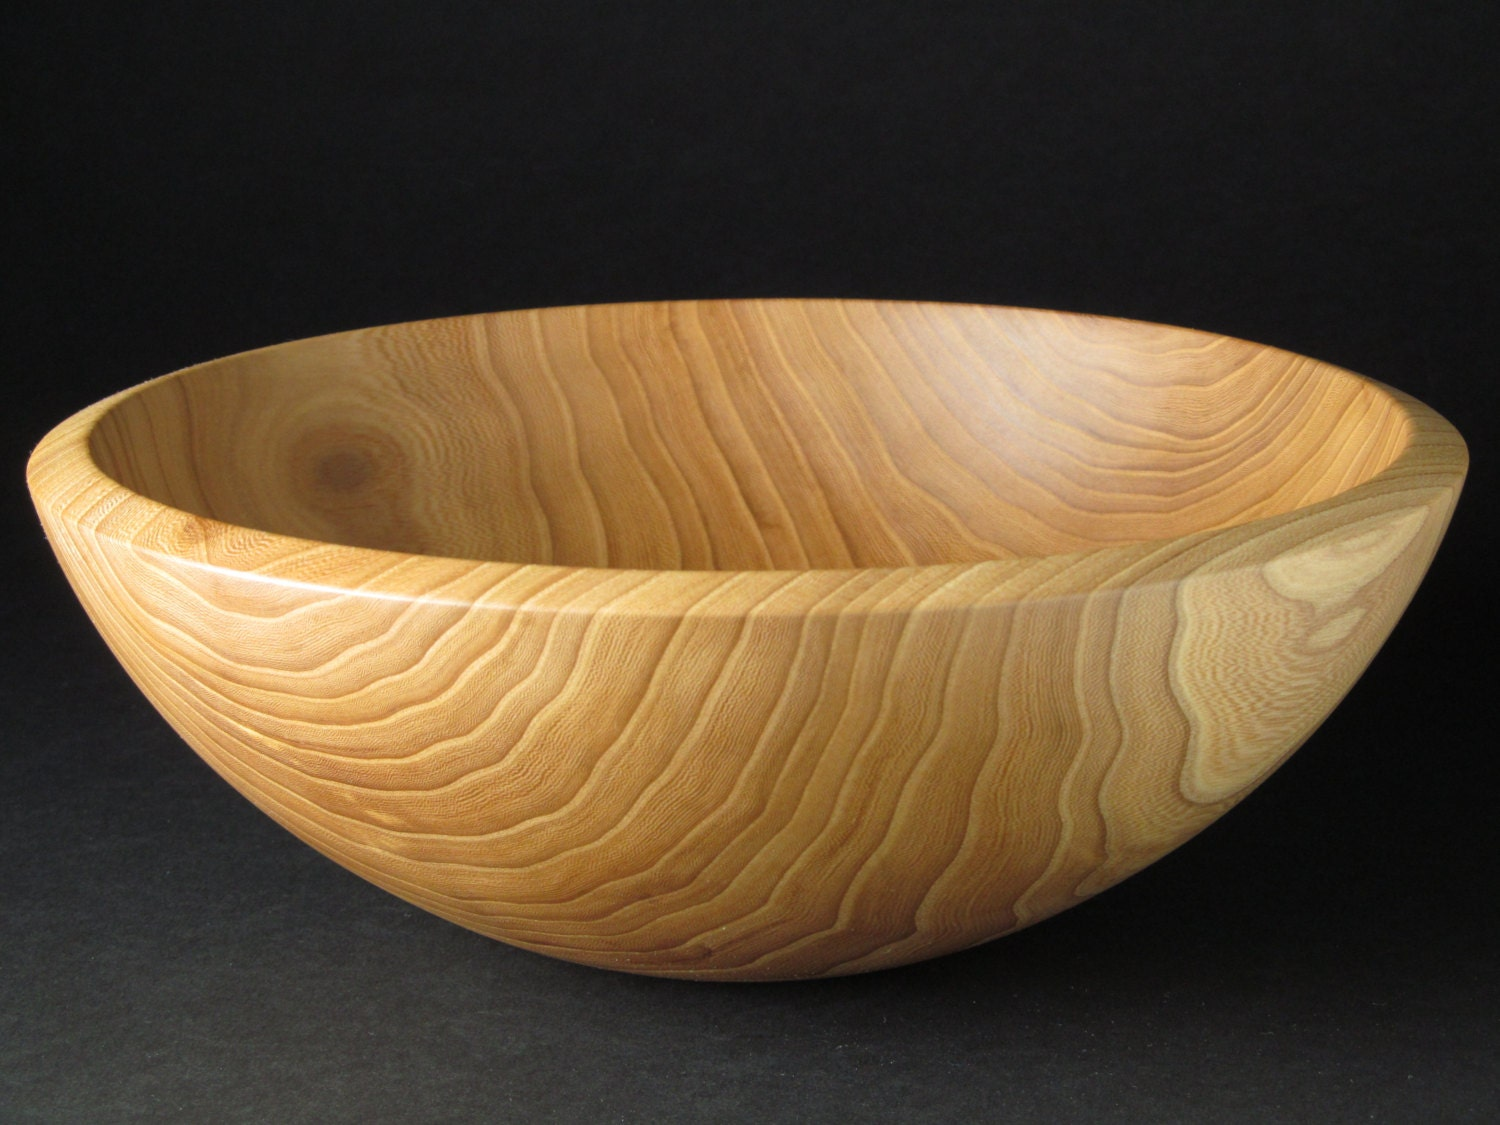 Handmade Wooden Bowl Handcrafted Elm Fruit By